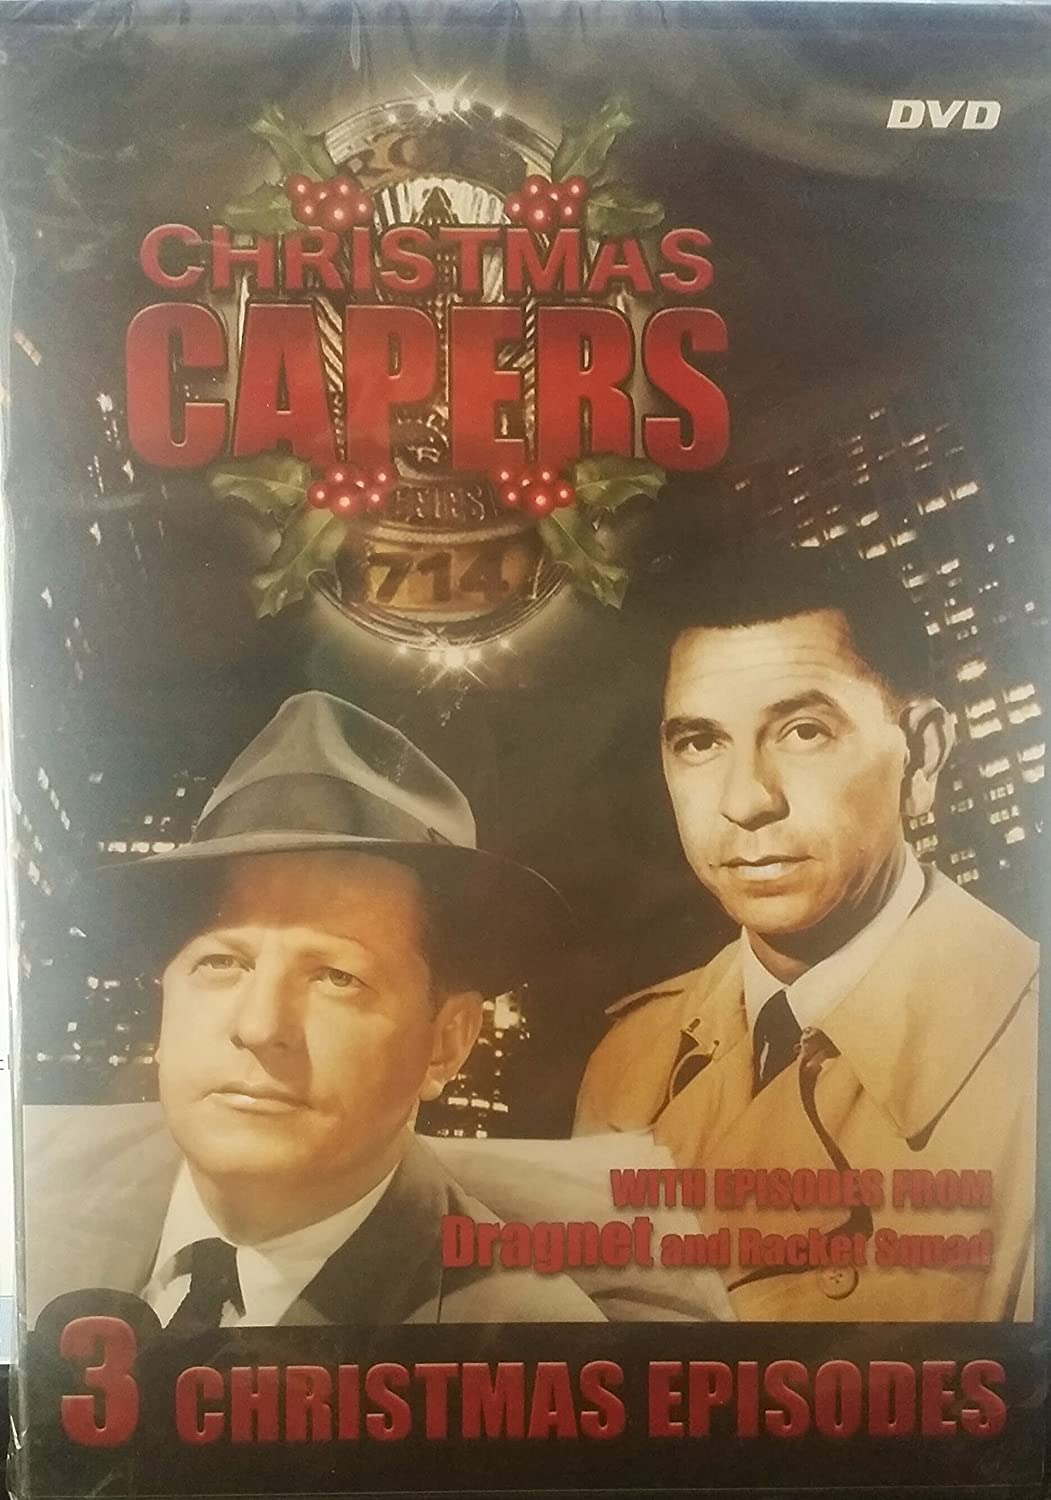 Christmas Dragnet.Amazon Com Christmas Capers With Episodes From Dragnet And